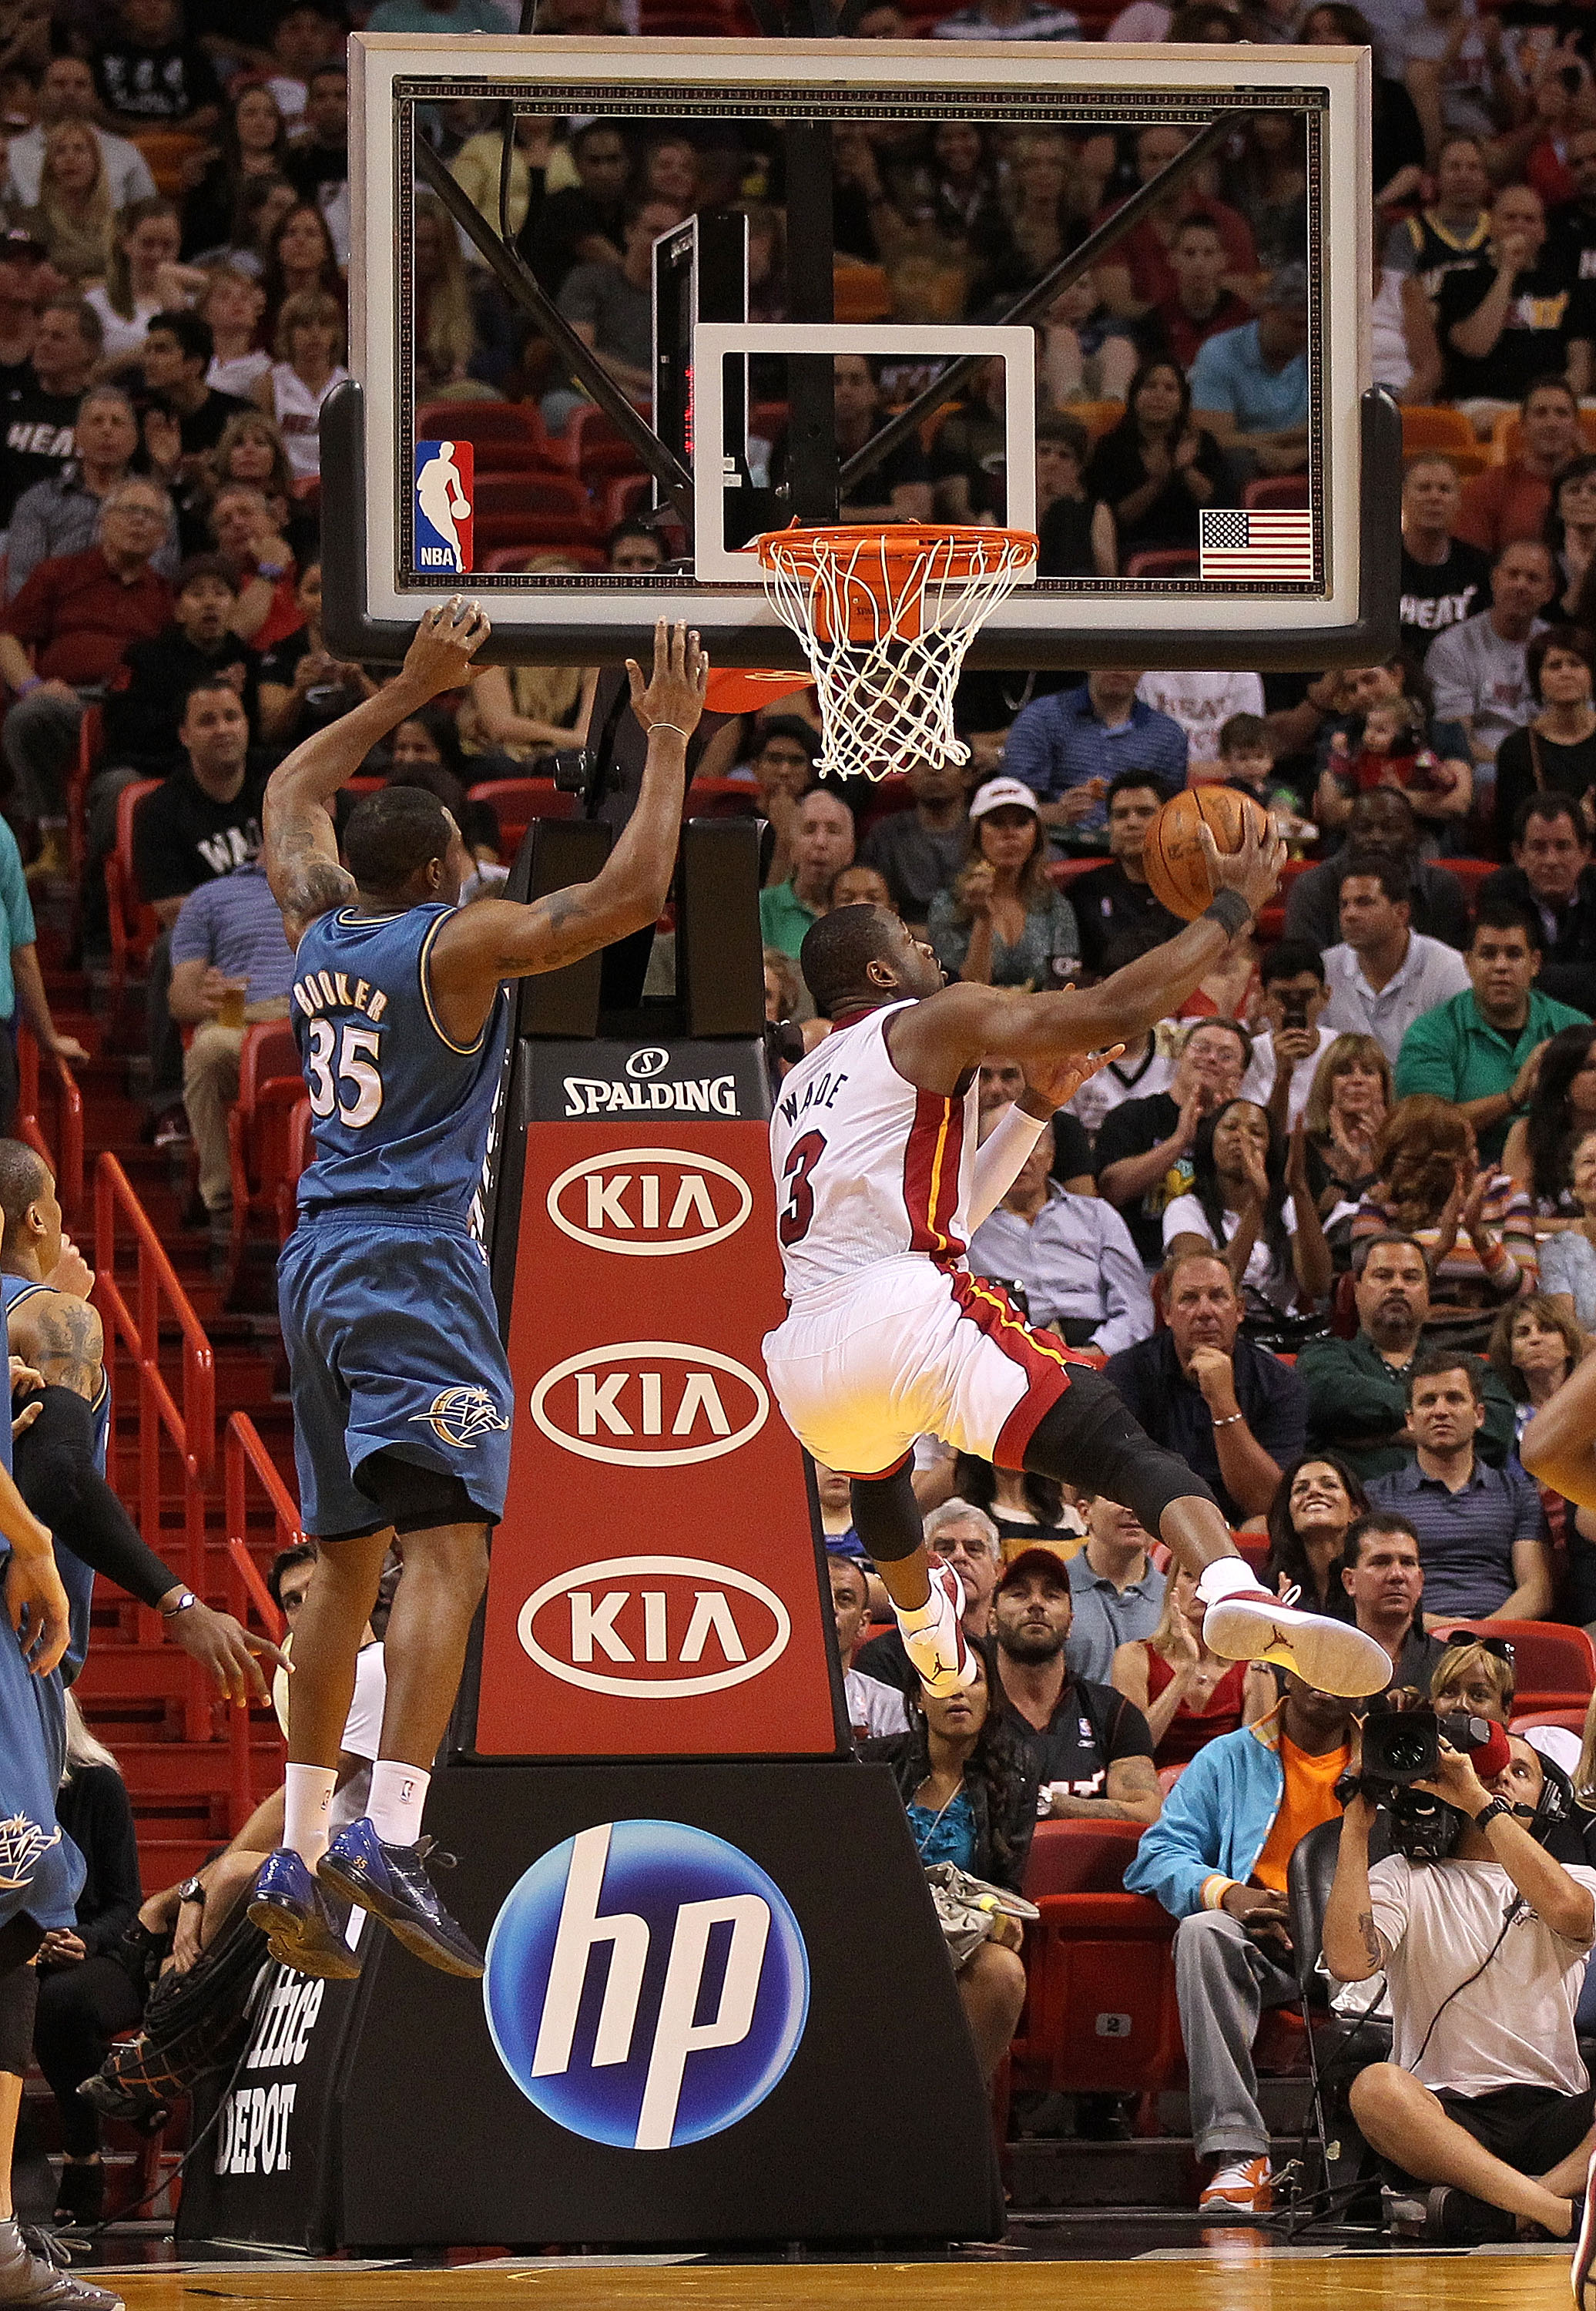 MIAMI, FL - FEBRUARY 25: Dwyane Wade #3 of the Miami Heat takes an off-balance shot during a game against the Washington Wizards at American Airlines Arena on February 25, 2011 in Miami, Florida. NOTE TO USER: User expressly acknowledges and agrees that,